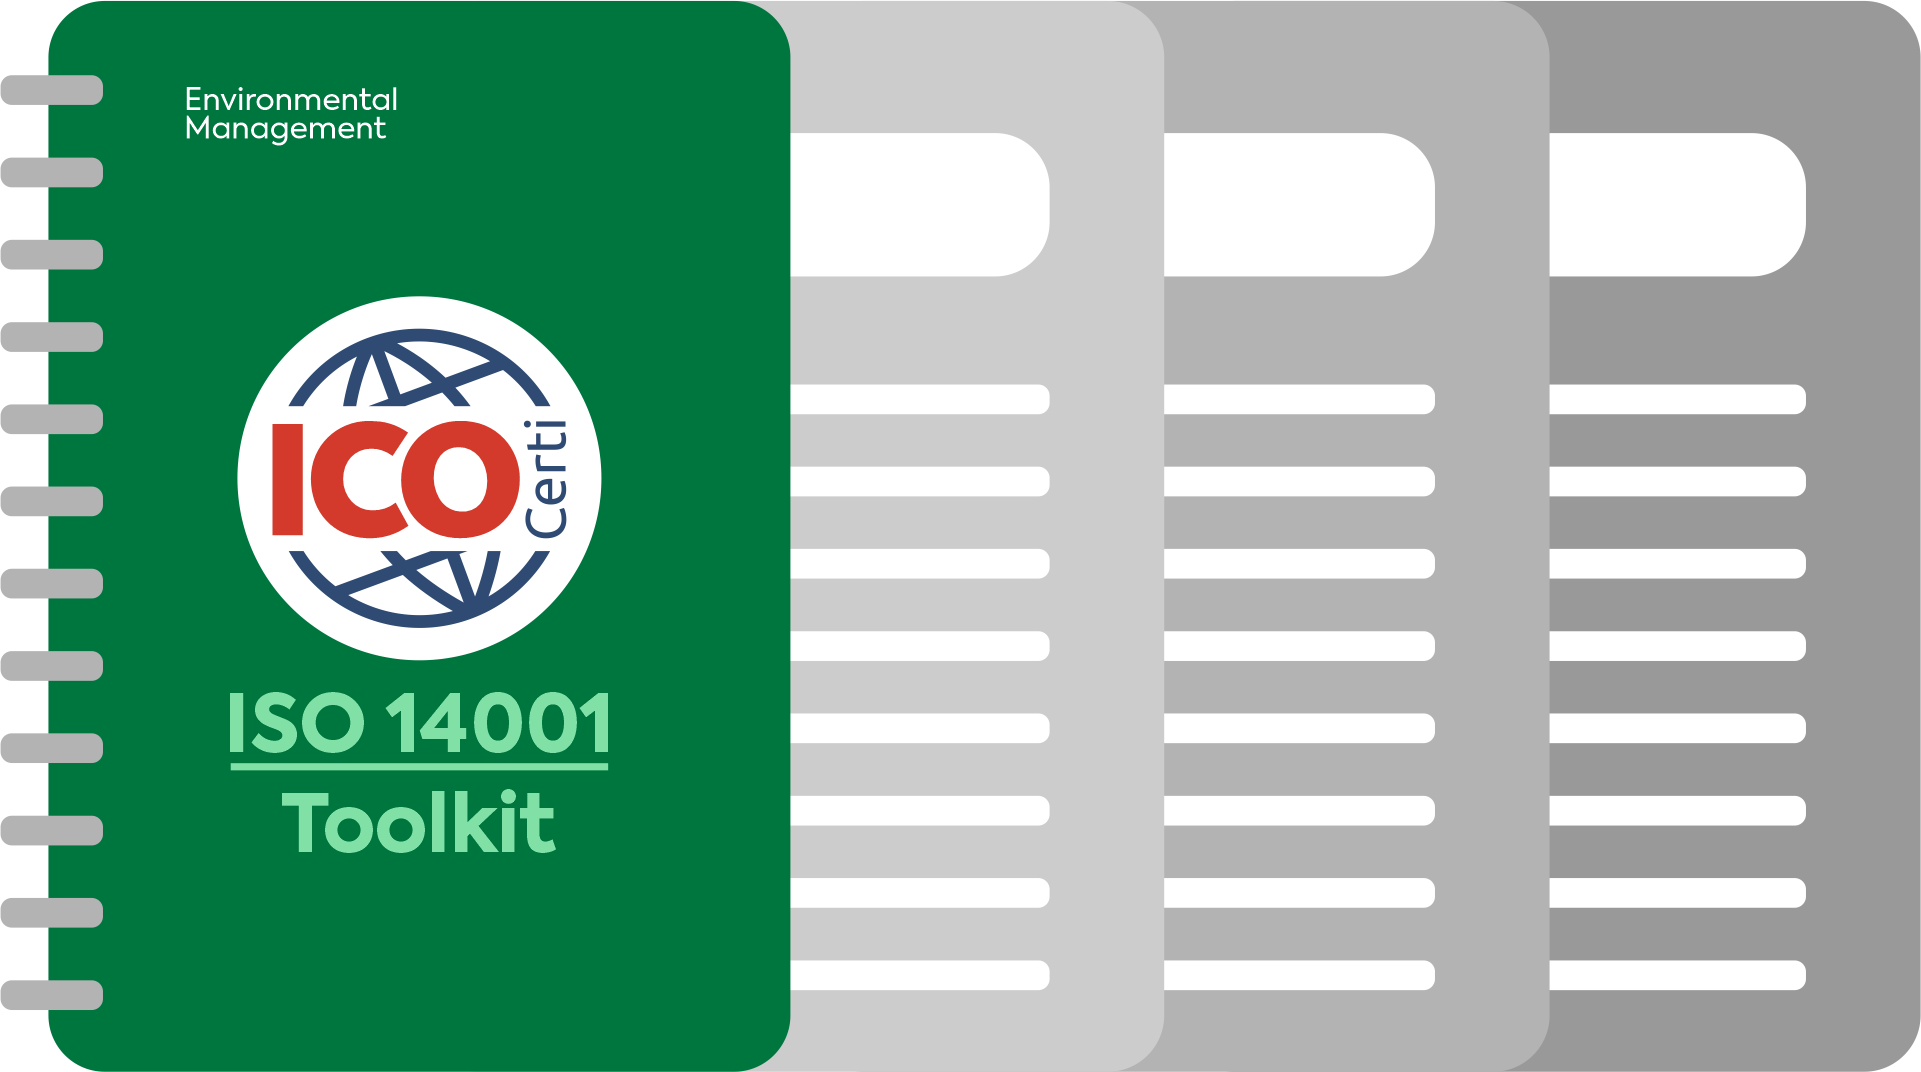 ISO 14001 Toolkit